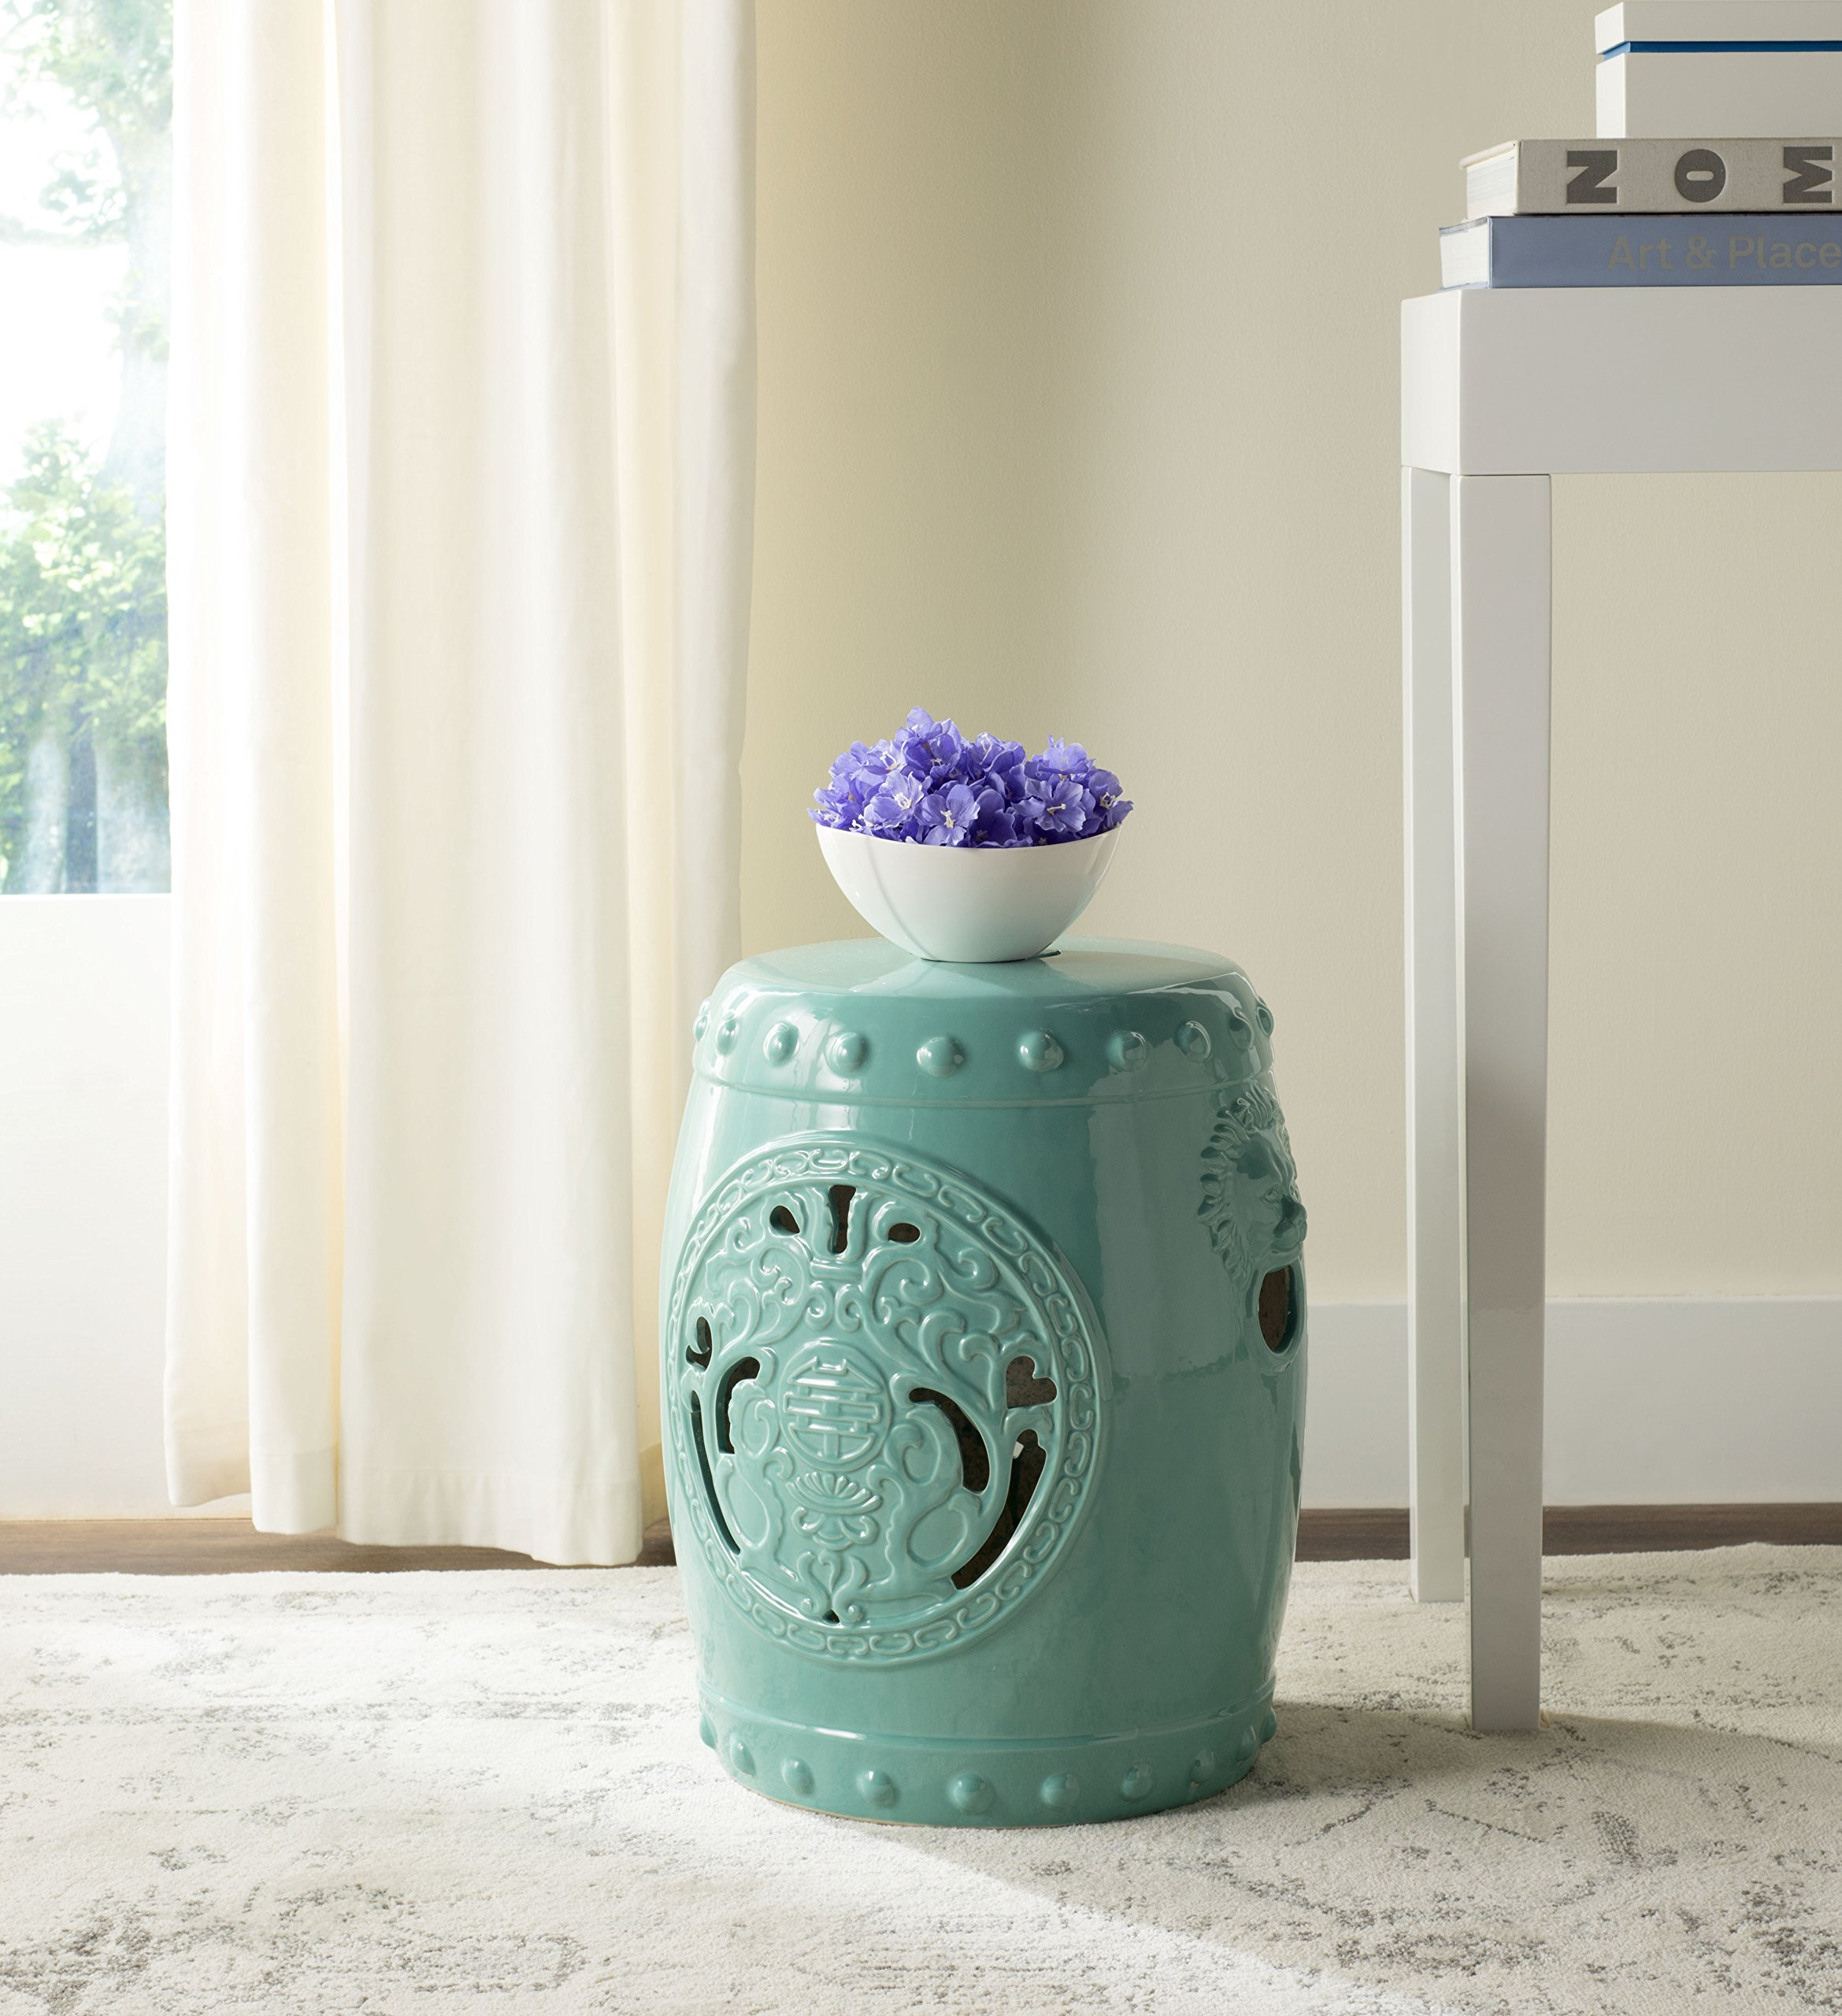 Safavieh Castle Gardens Collection Dragon Coin Light Blue Glazed Ceramic Garden Stool by Safavieh